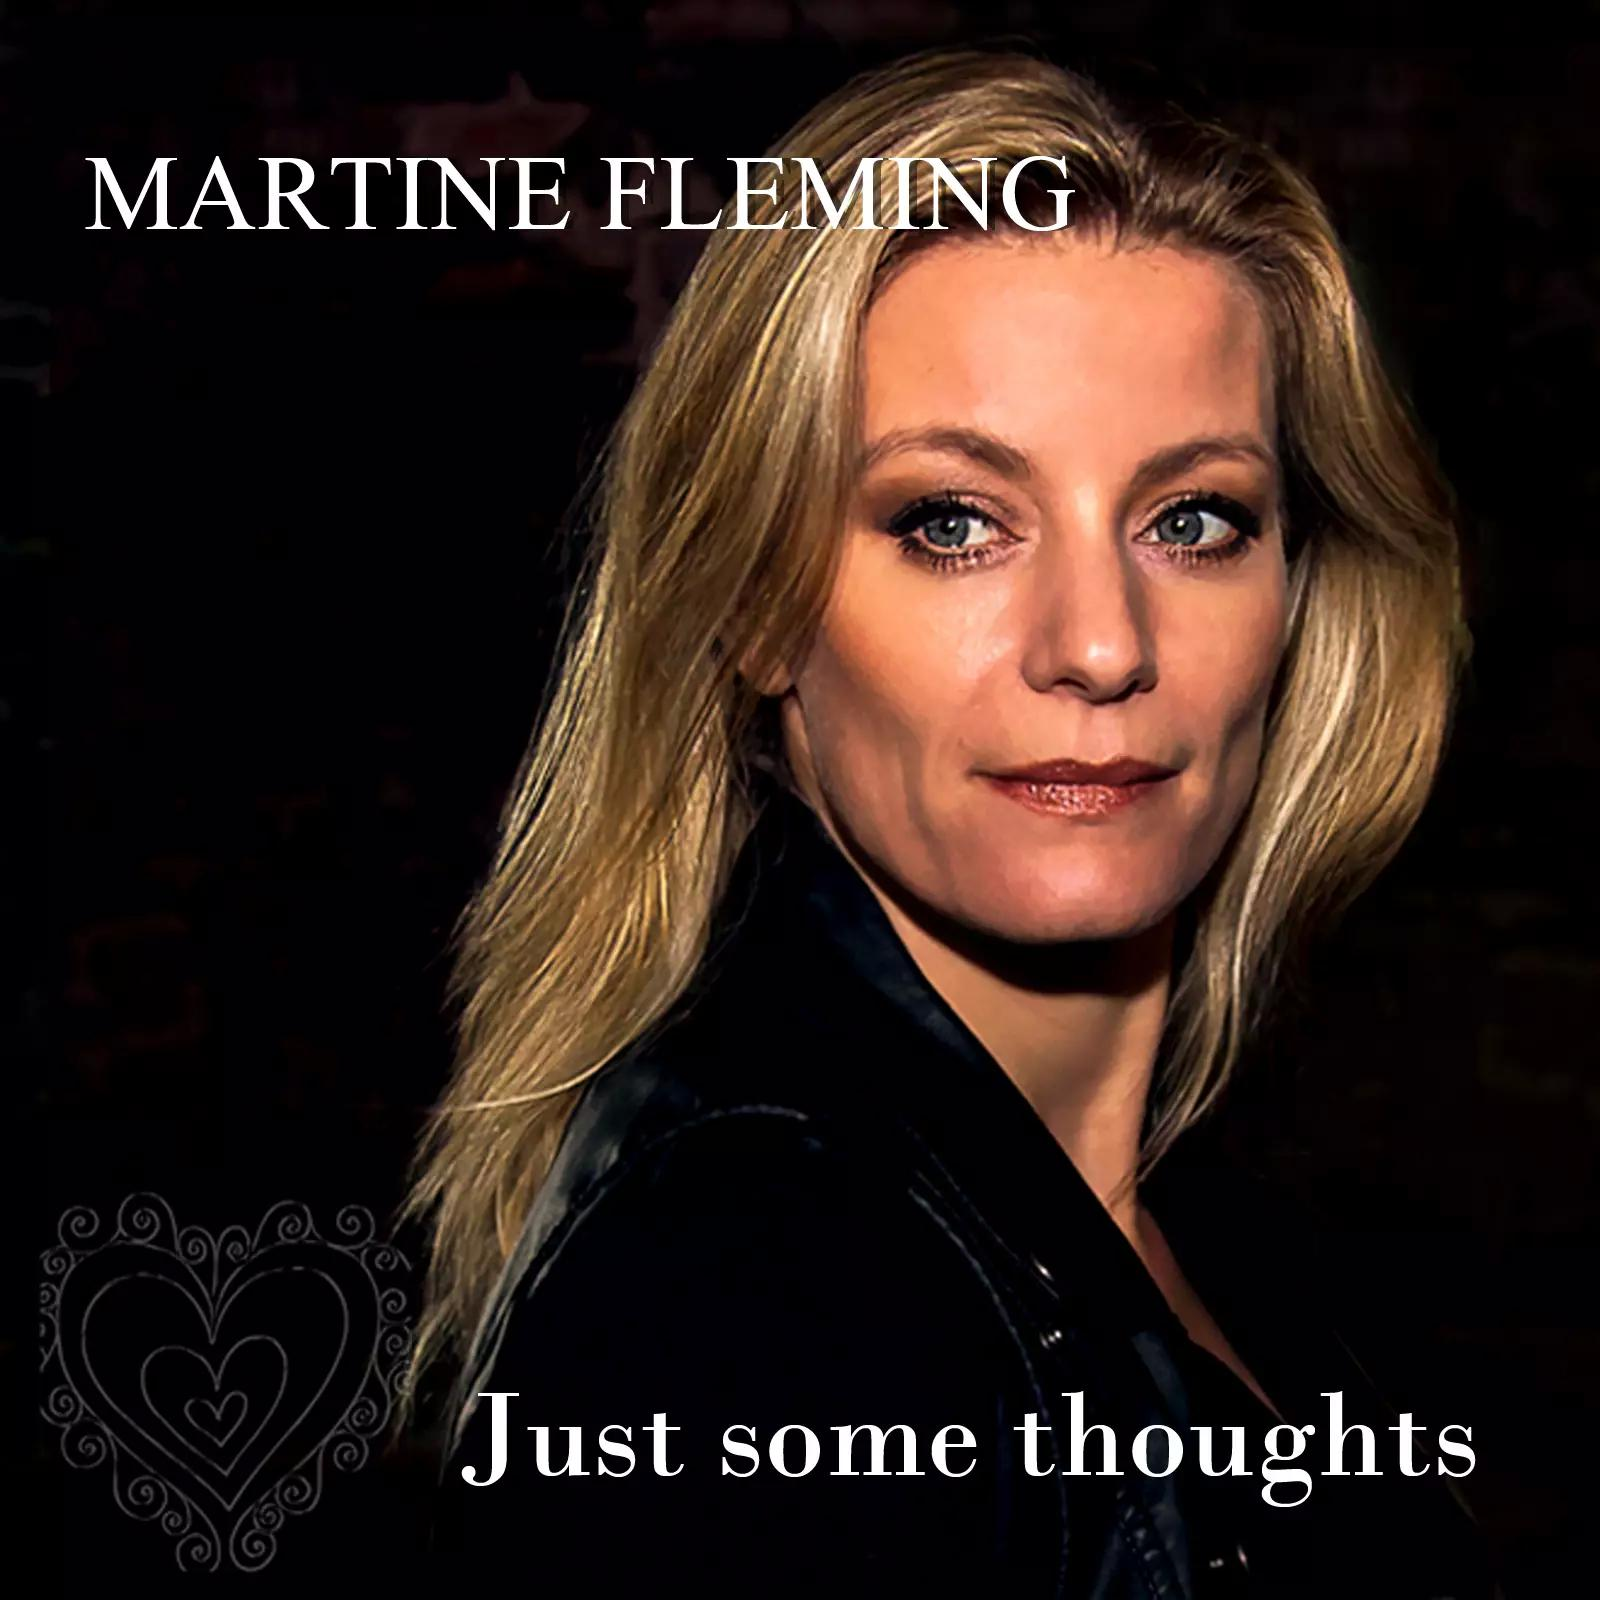 Artwork-Martine-Fleming_Just-some-thoughts_1600x1600px_def